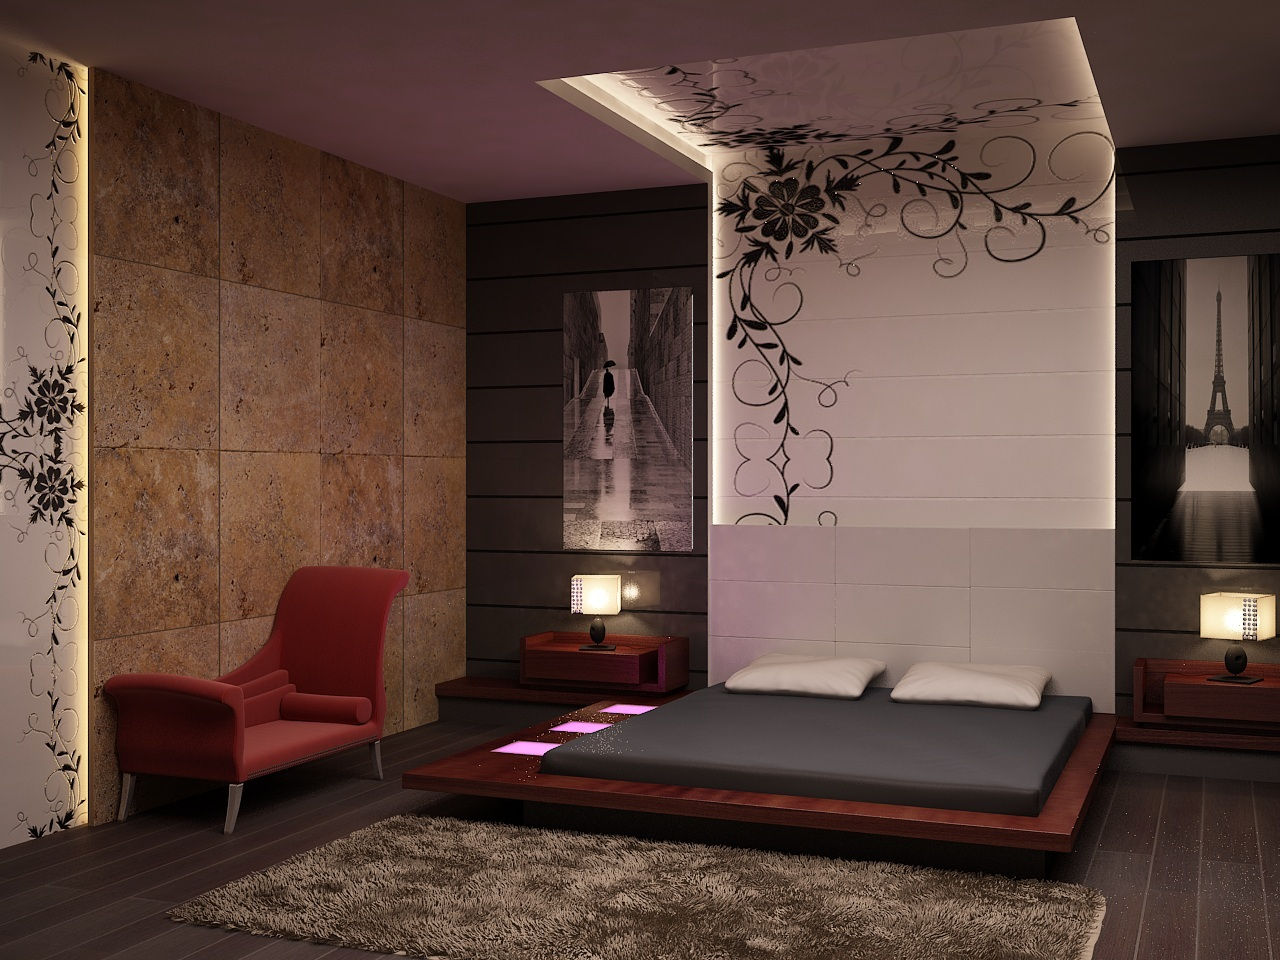 10 Ways to Add Japanese Style to Your Interior Design